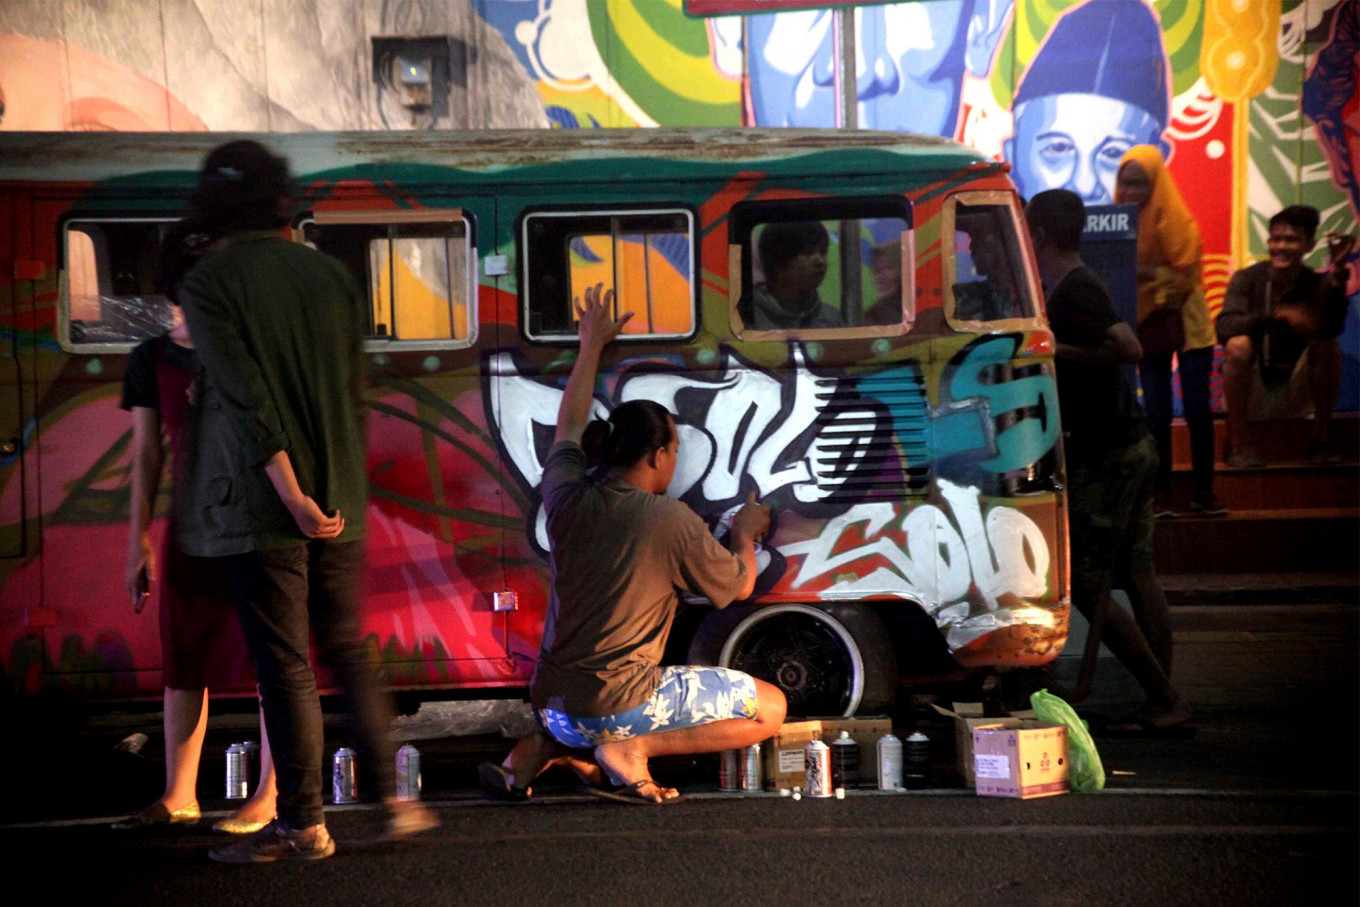 Spray time: Mural artists decorate a vintage car. JP/Maksum Nur Fauzan